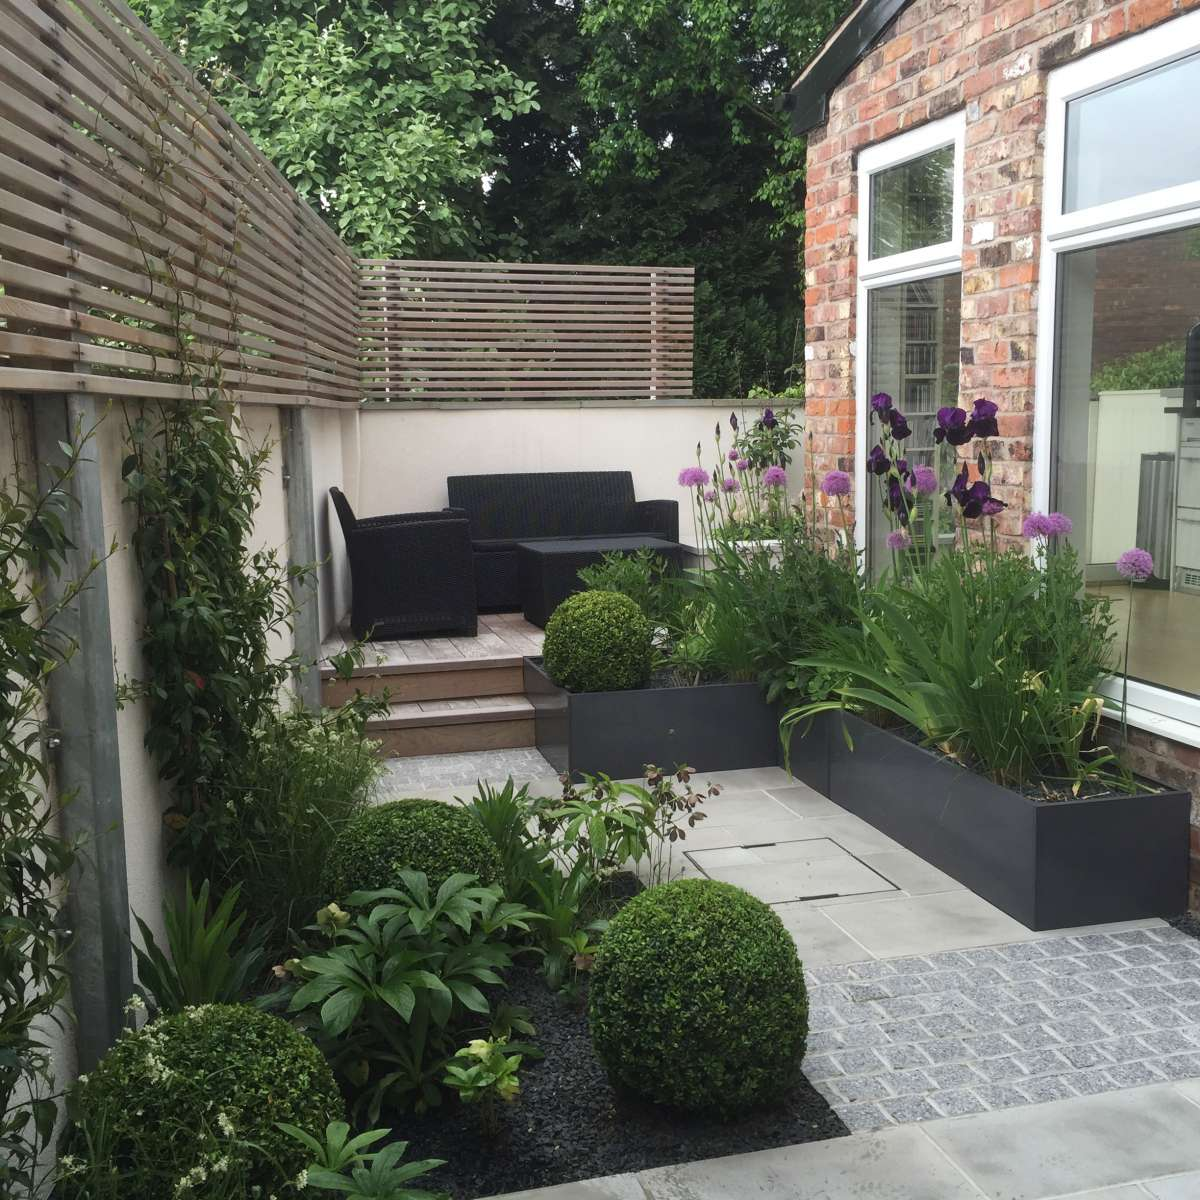 BOWDEN HOUSE NEAR MANCHESTER | Aralia Garden Design ... on Terraced House Backyard Ideas id=72137